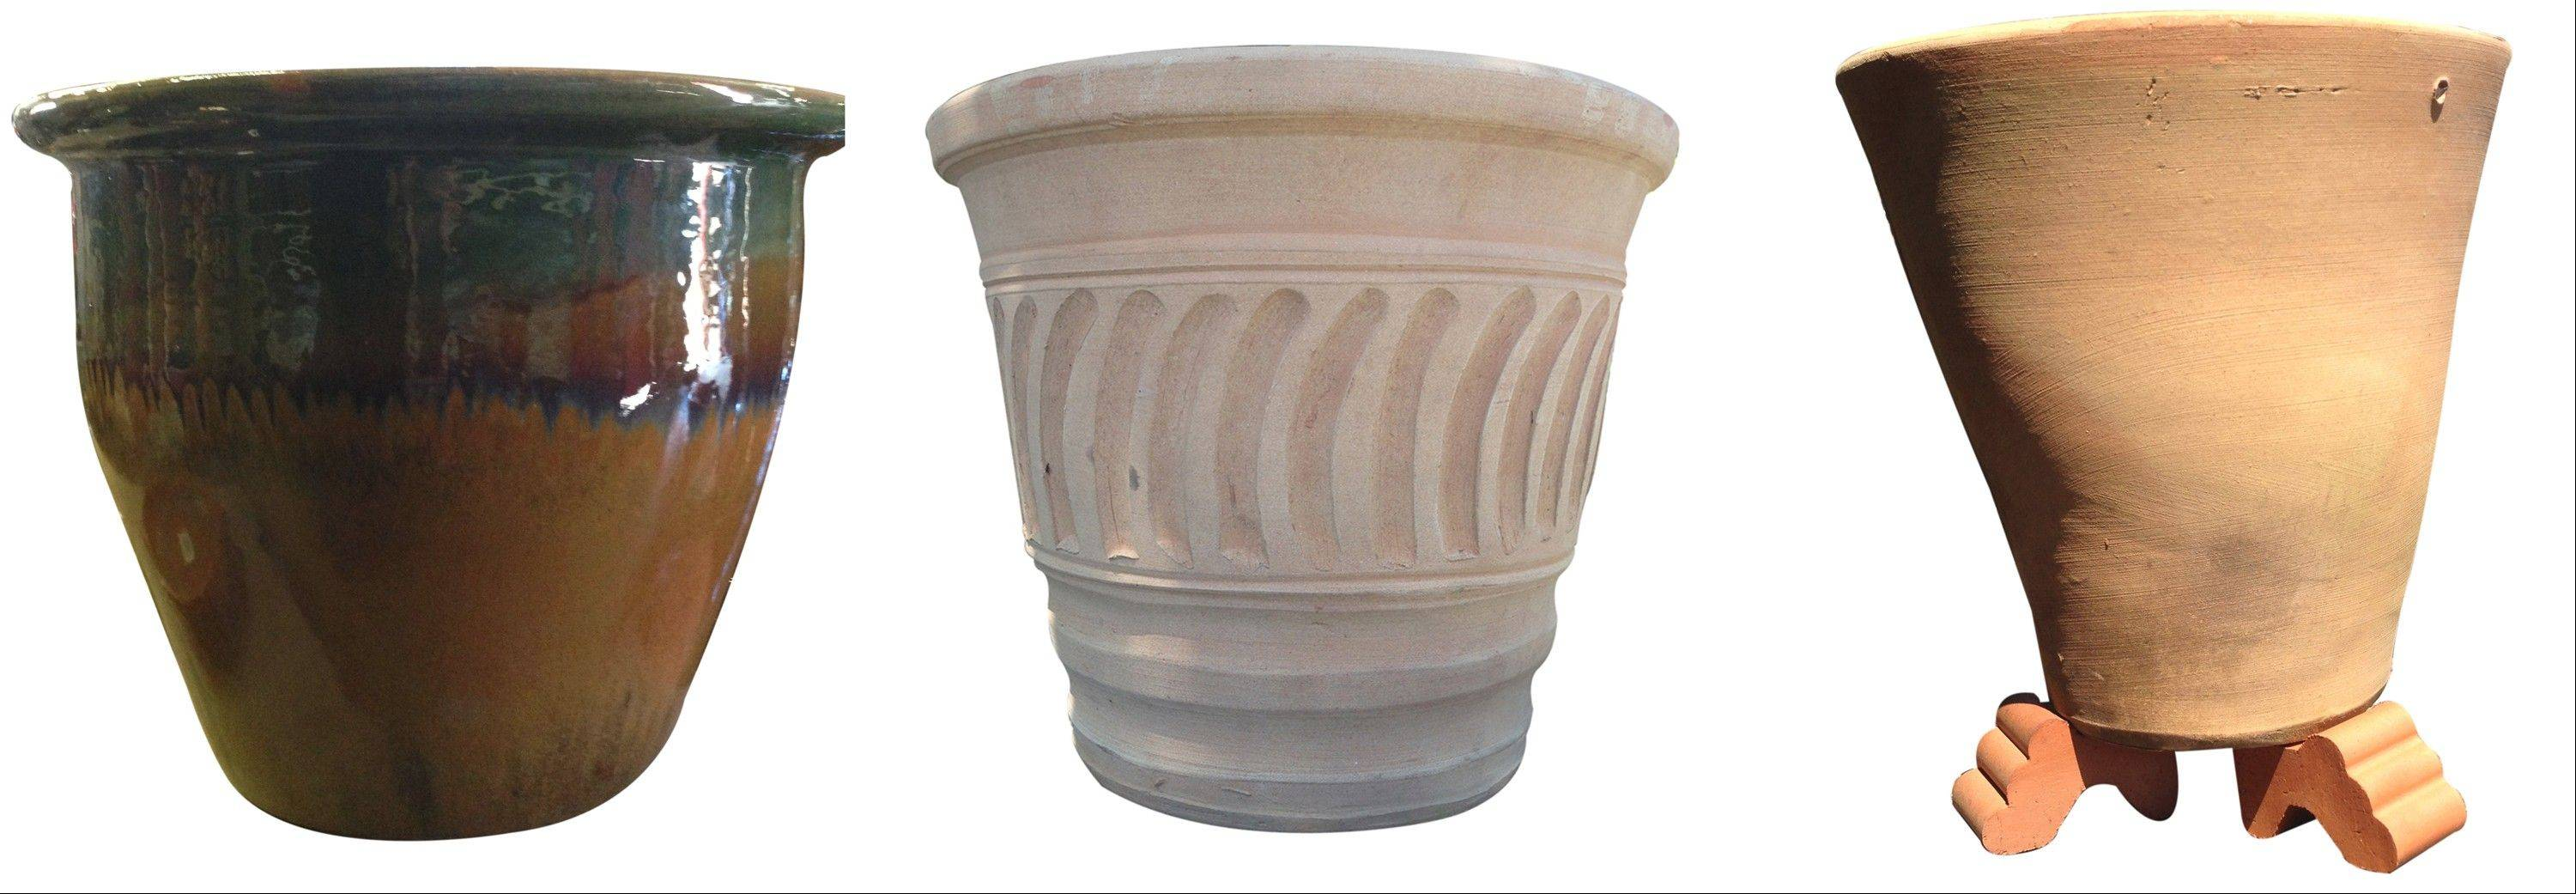 "From left, a Savannah Brown ceramic pot; a fluted terra cotta pot, and a pot with clay ""feet"" which can aid drainage, especially when pots sit directly on paving."